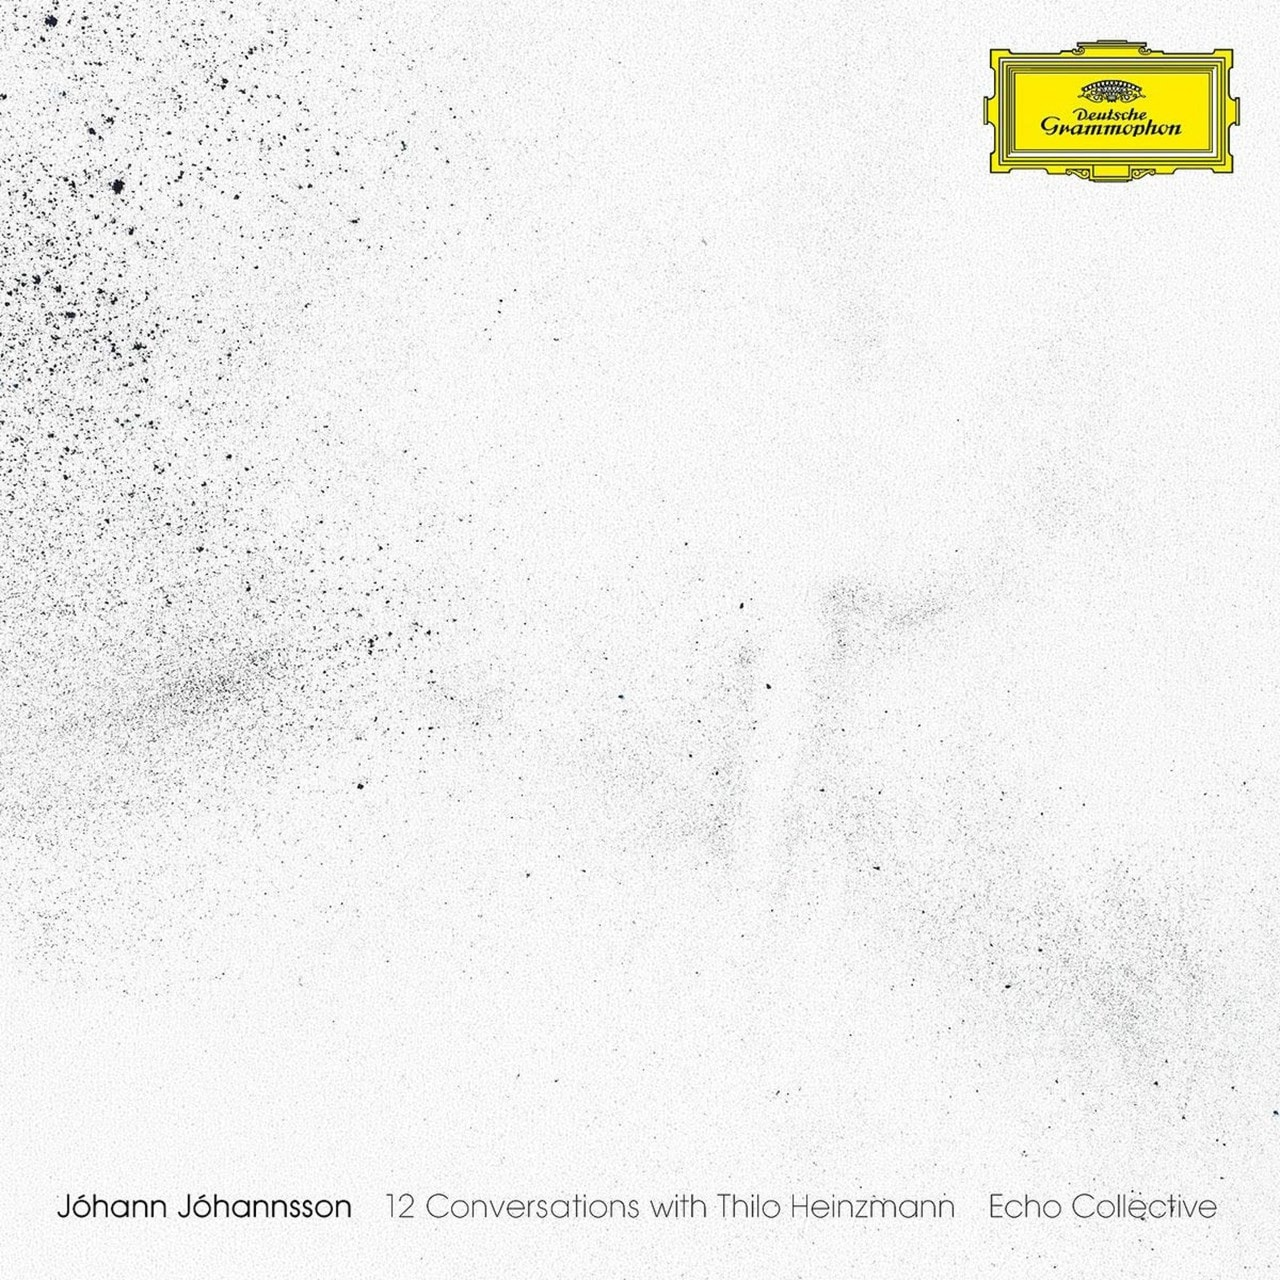 Johann Johannsson: 12 Conversations With Thilo Heinzmann - 1